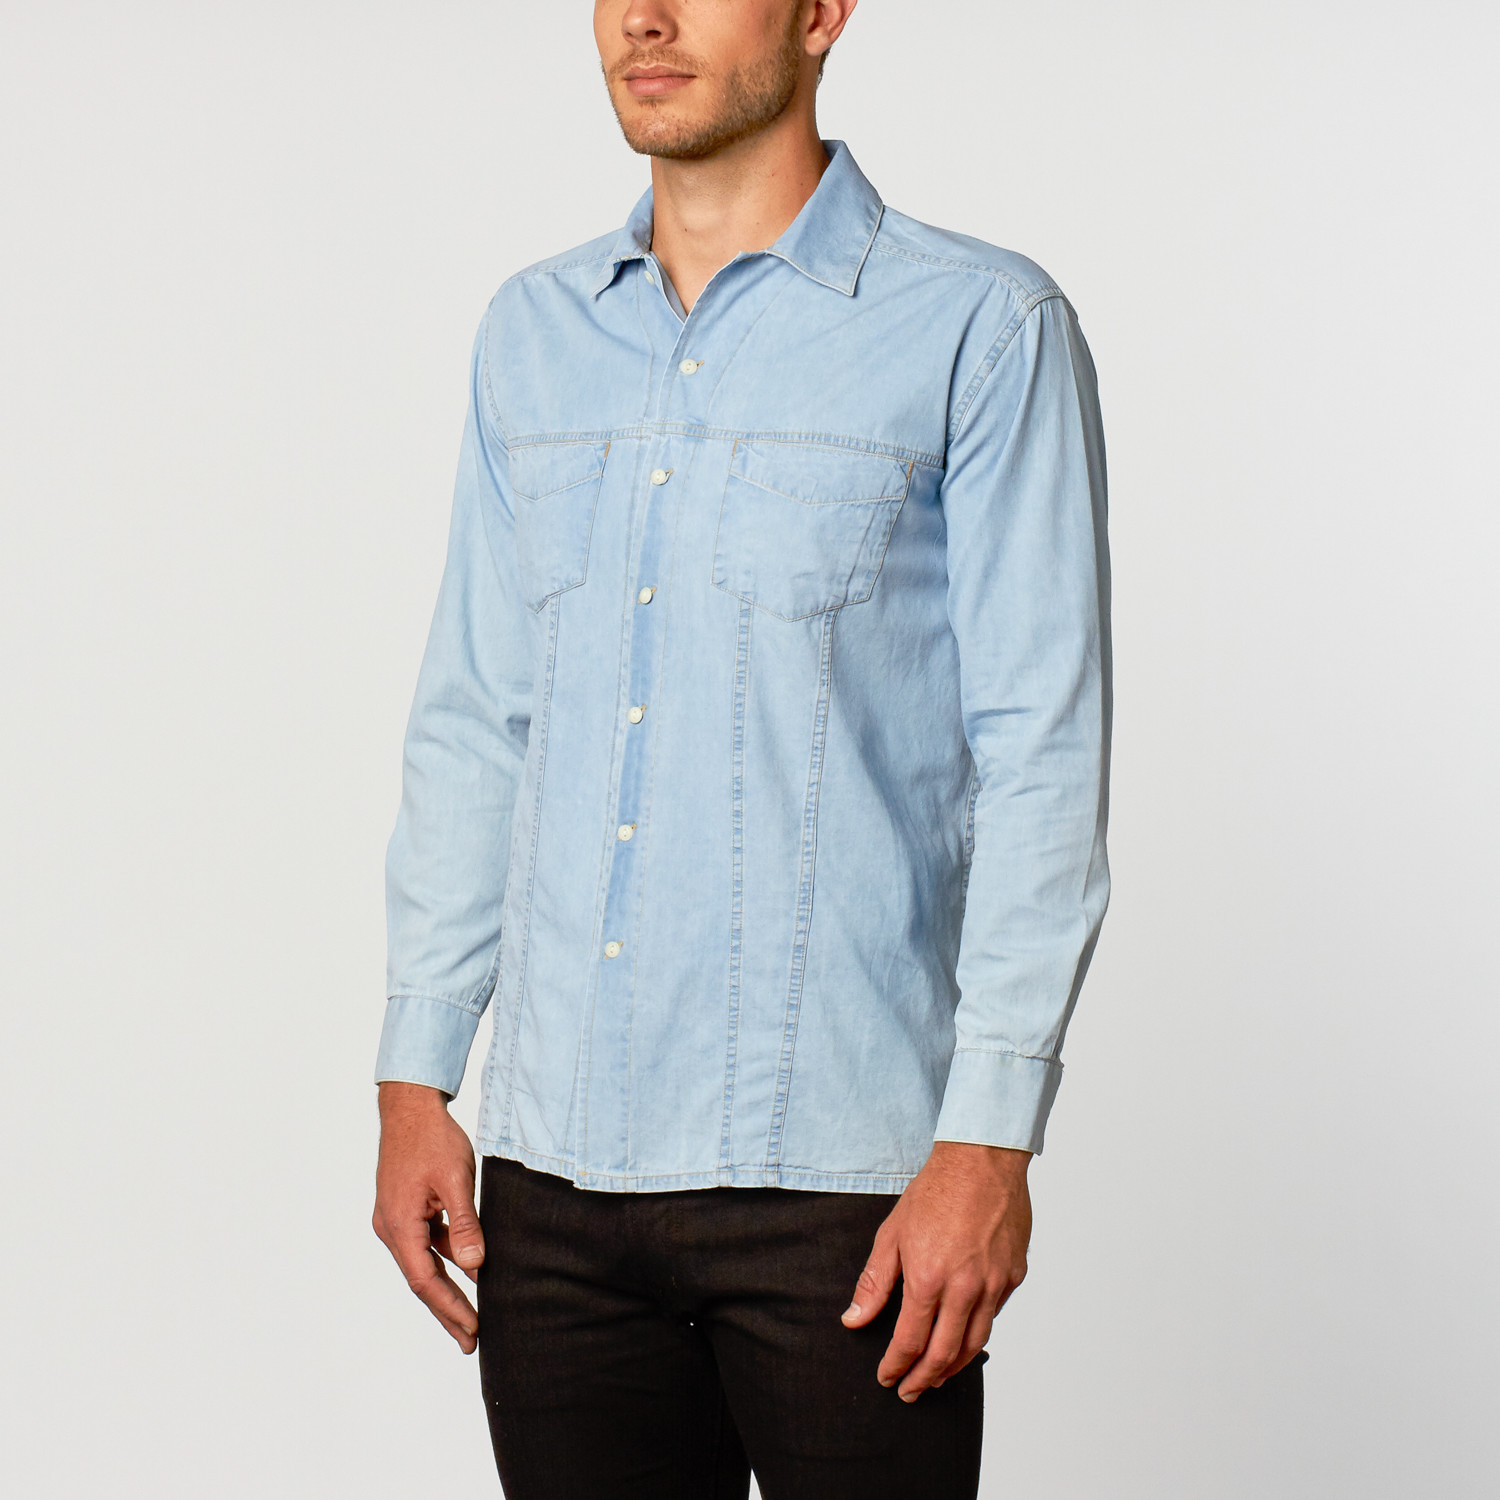 795f913b9ed Washed Denim Shirt    Ice Blue (S) - Lenor Romano - Touch of Modern